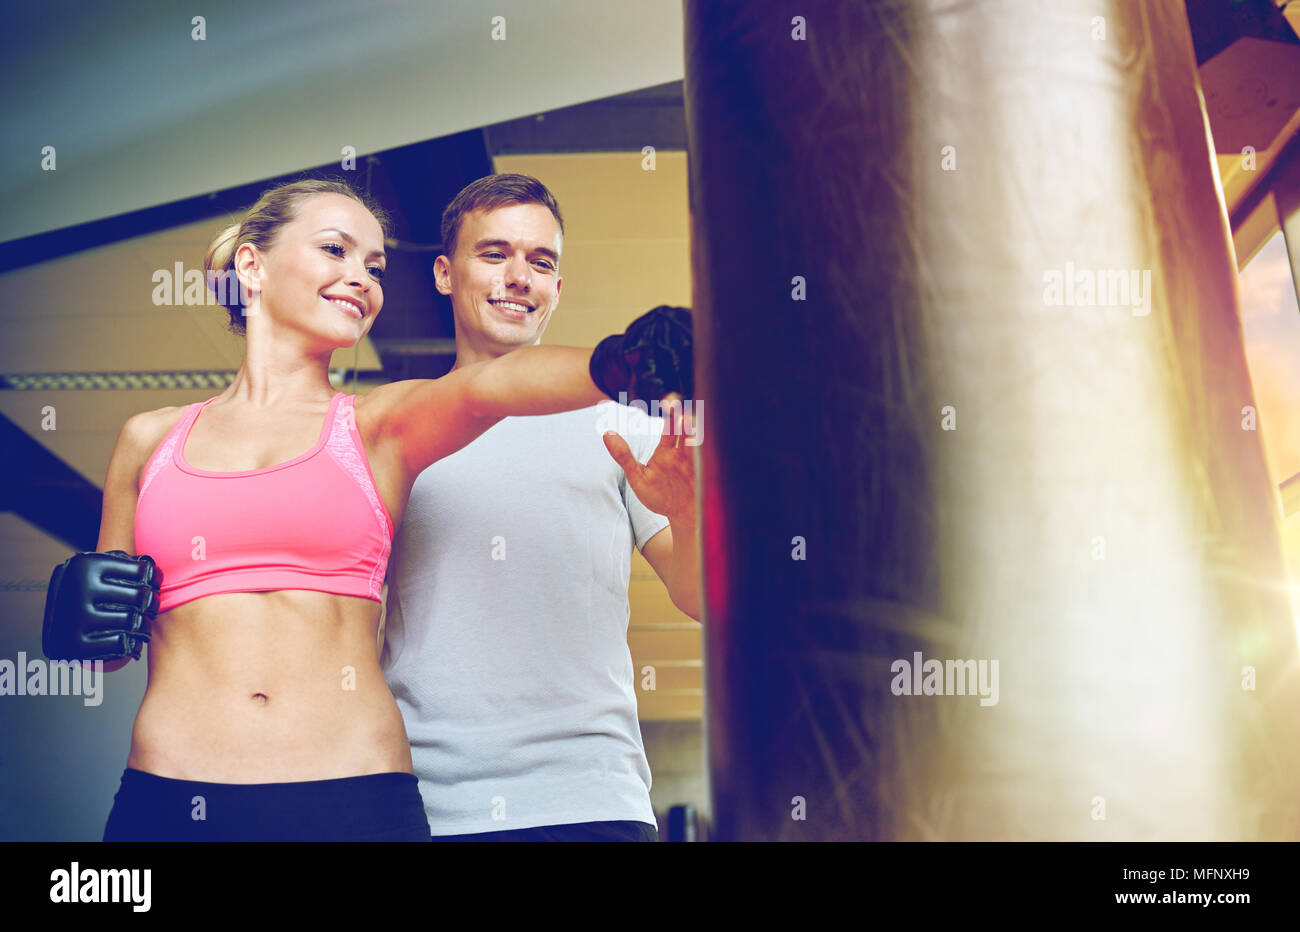 smiling woman with personal trainer boxing in gym - Stock Image